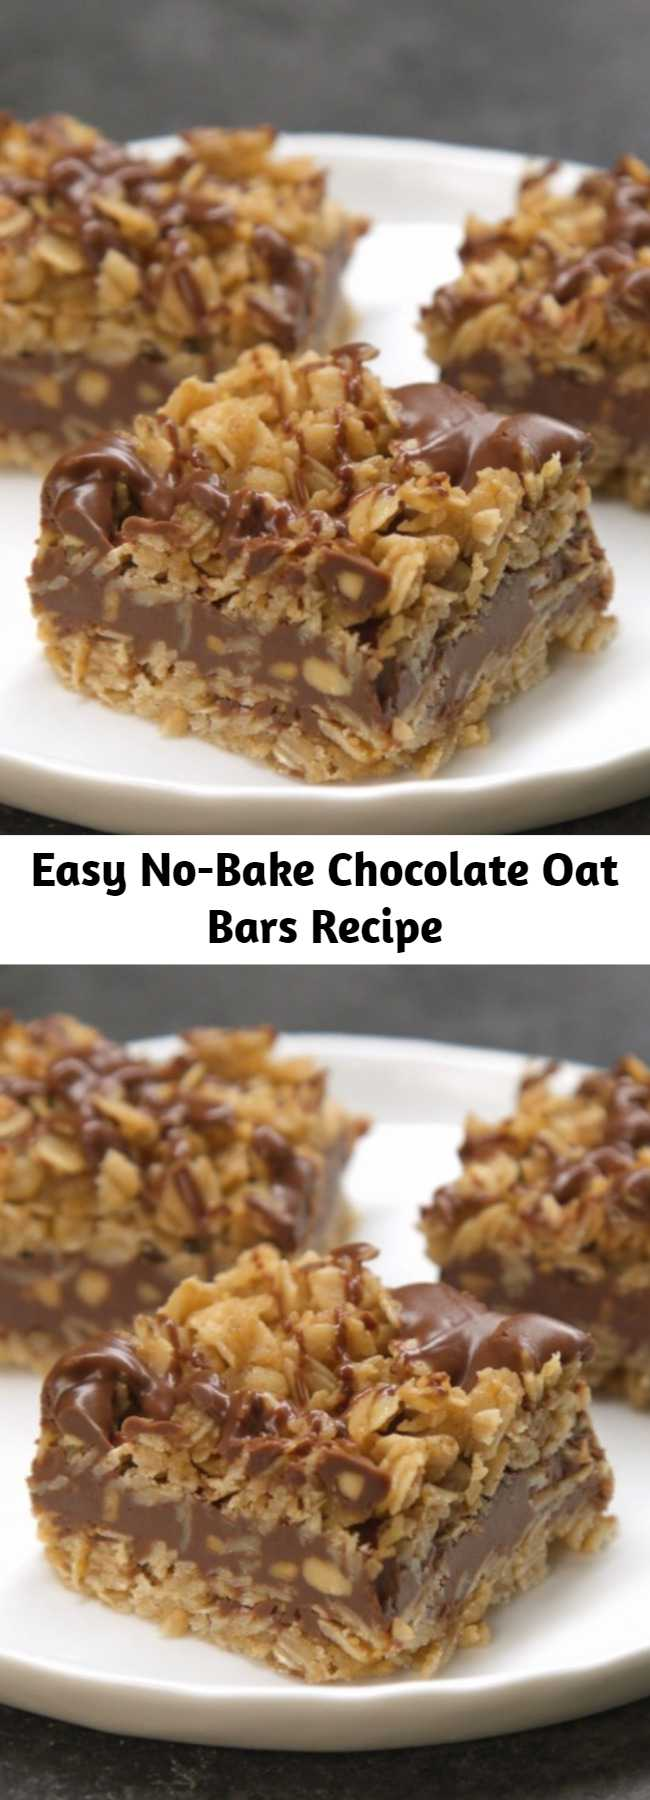 Easy No-Bake Chocolate Oat Bars Recipe - Yum! Delicious, easy, and no need to turn on the oven. Plus, if you want to make a whole bunch of bars ahead of time, you can totally freeze them, too! Just make sure you bring them back to room temperature before enjoying.